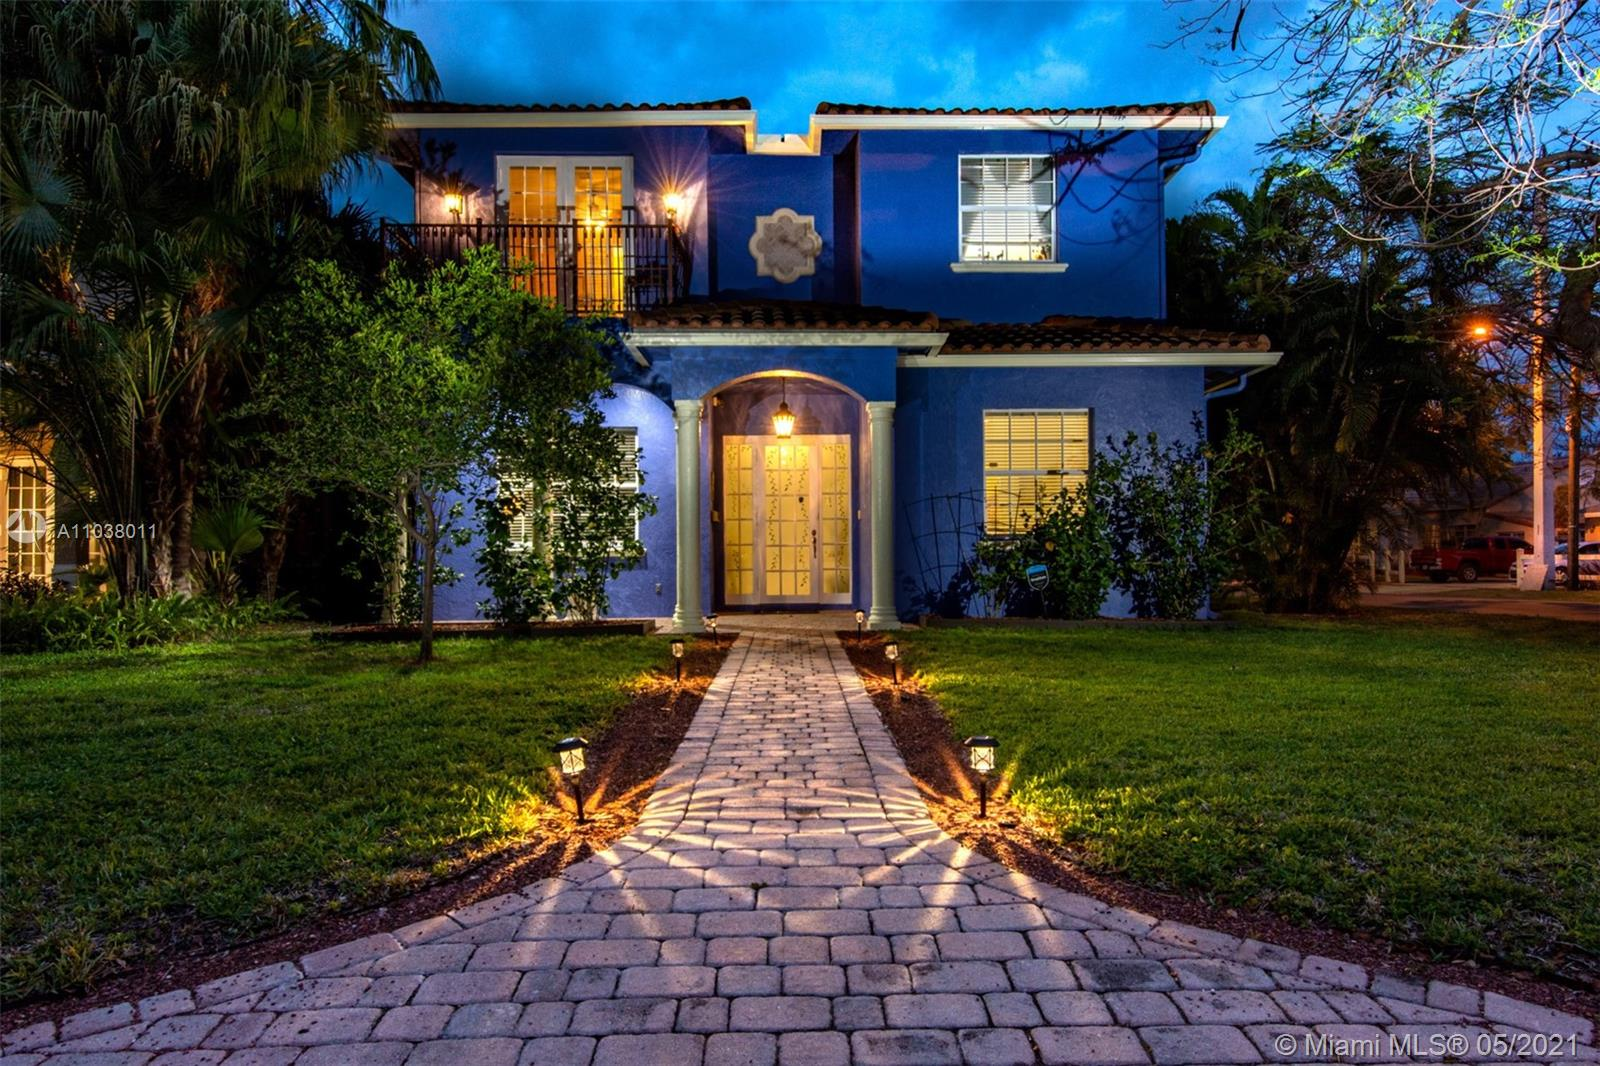 """Welcome to """"The Oasis"""" in Victoria Park. This 3135 sq. foot 5/4/2 home + pool designed & custom built by Glenn Wright Architect in 2002, a """"True"""" Center Hall Colonial, on a corner lot. The home has had 2 owners and was meticulously upgraded to include: polished marble flooring, high impact windows & doors, 2 zone air, 10ft. celling's, crown molding with ceiling fans generously located throughout the home, 2 balconies upstairs. Generously sized footprint with Living, Dining, Family and kitchen plus wood panel finish in the office/5th bedroom adjacent to a full bath and laundry room. 2 car garage includes work/storage. Upstairs are 4 bedrooms, 3 Bath including one bedroom suite & the Master suite with his/her closets, large Jacuzzi corner bath. Backyard Oasis -Pool -Custom Bar -Orchid Garden"""